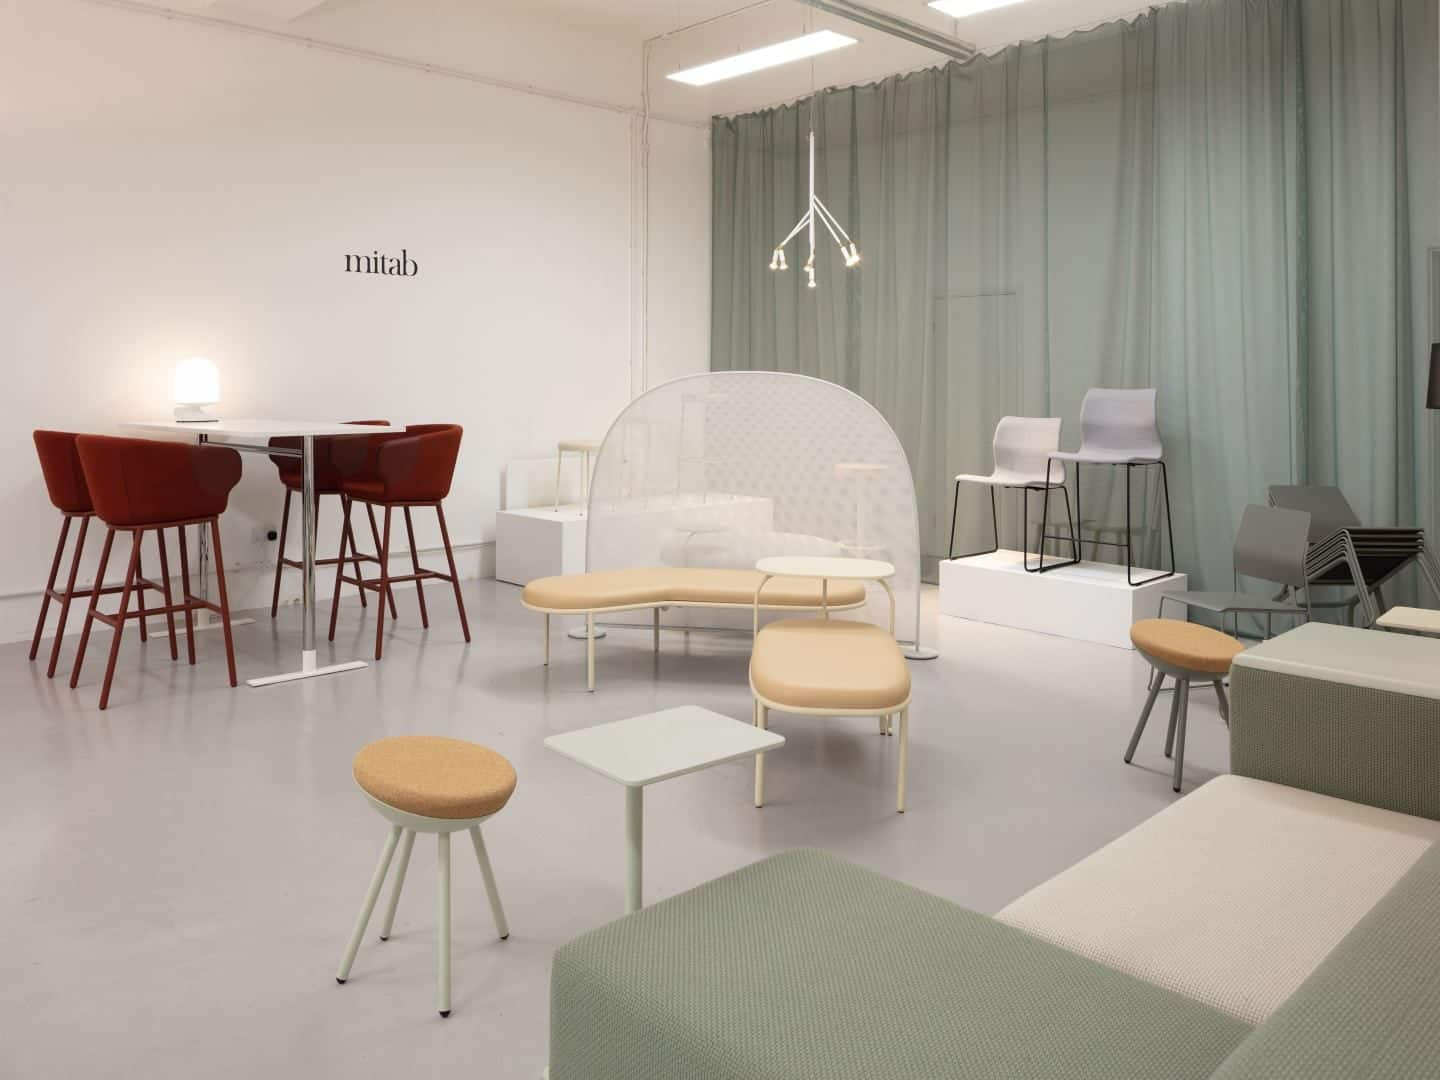 Clerkenwell Design Week 2019 pop-up exhibition by Relay Design Agency featuring Mitab